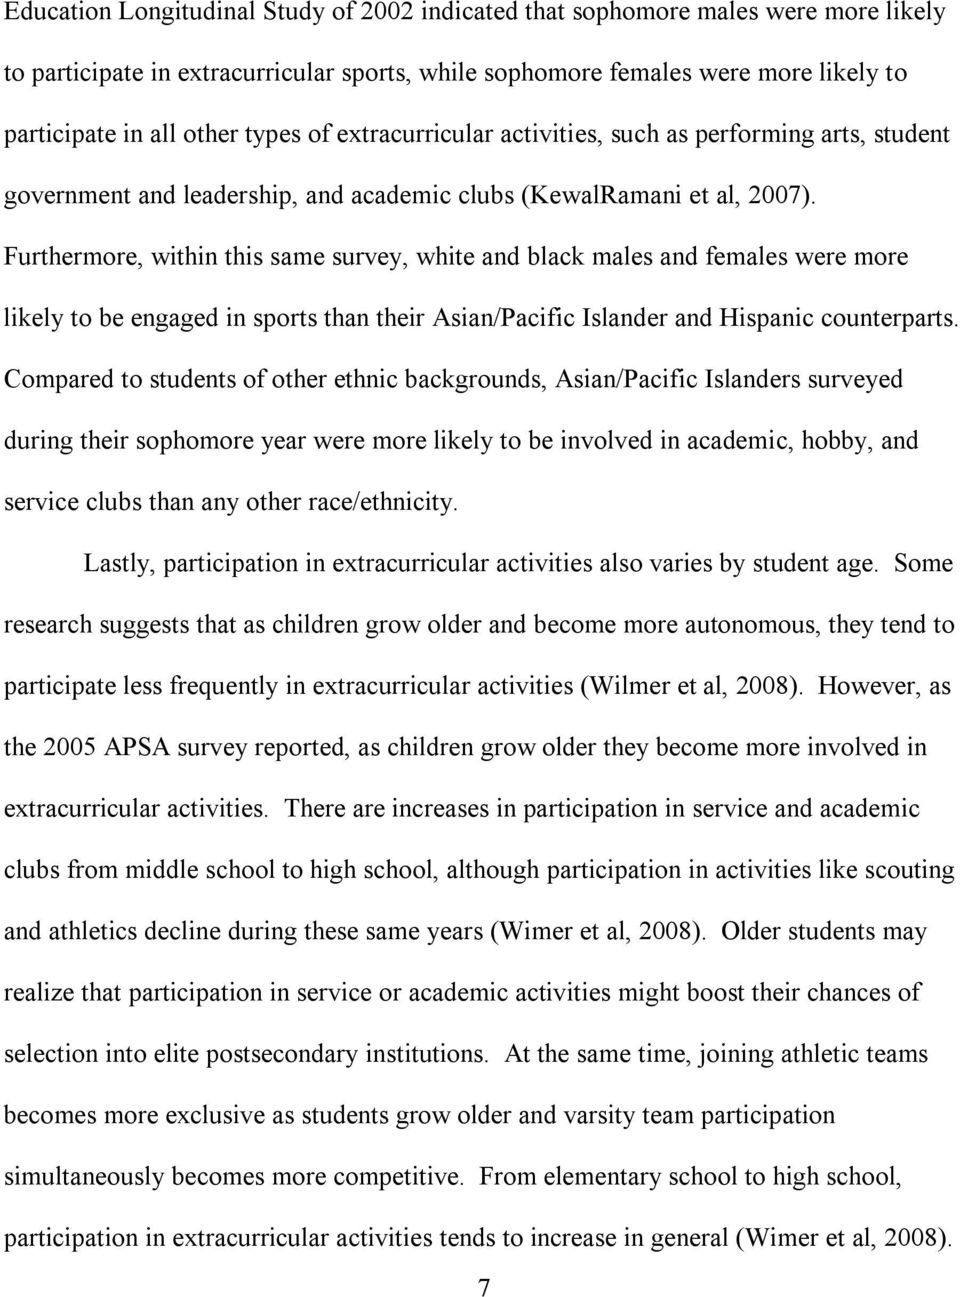 Furthermore, within this same survey, white and black males and females were more likely to be engaged in sports than their Asian/Pacific Islander and Hispanic counterparts.